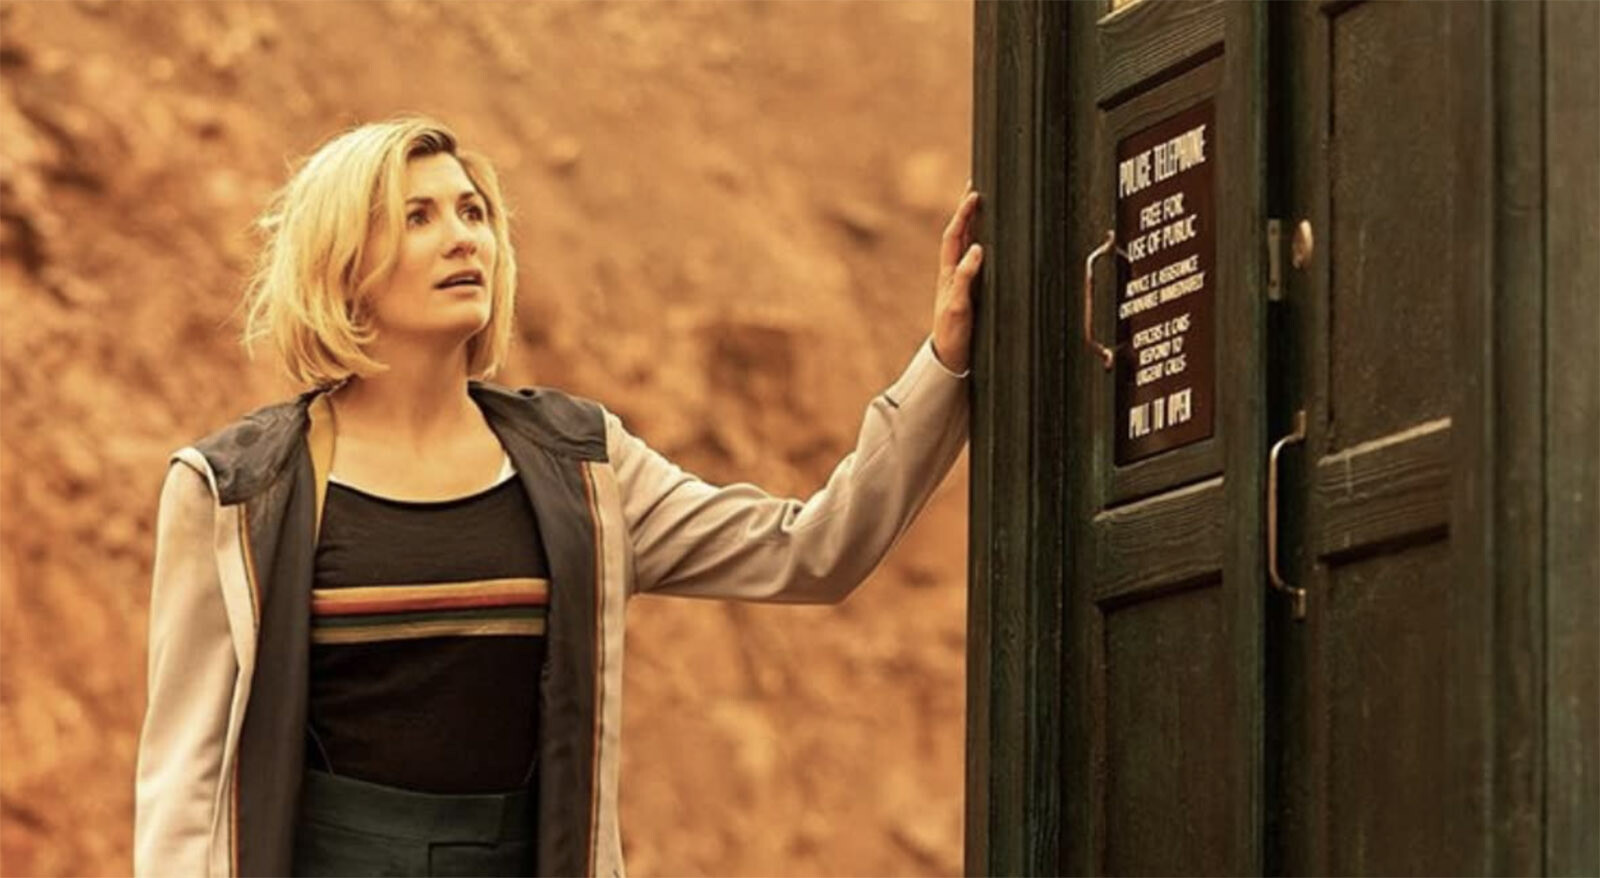 Jodie Whittaker, the first female Doctor, will step down from 'Doctor Who' next year